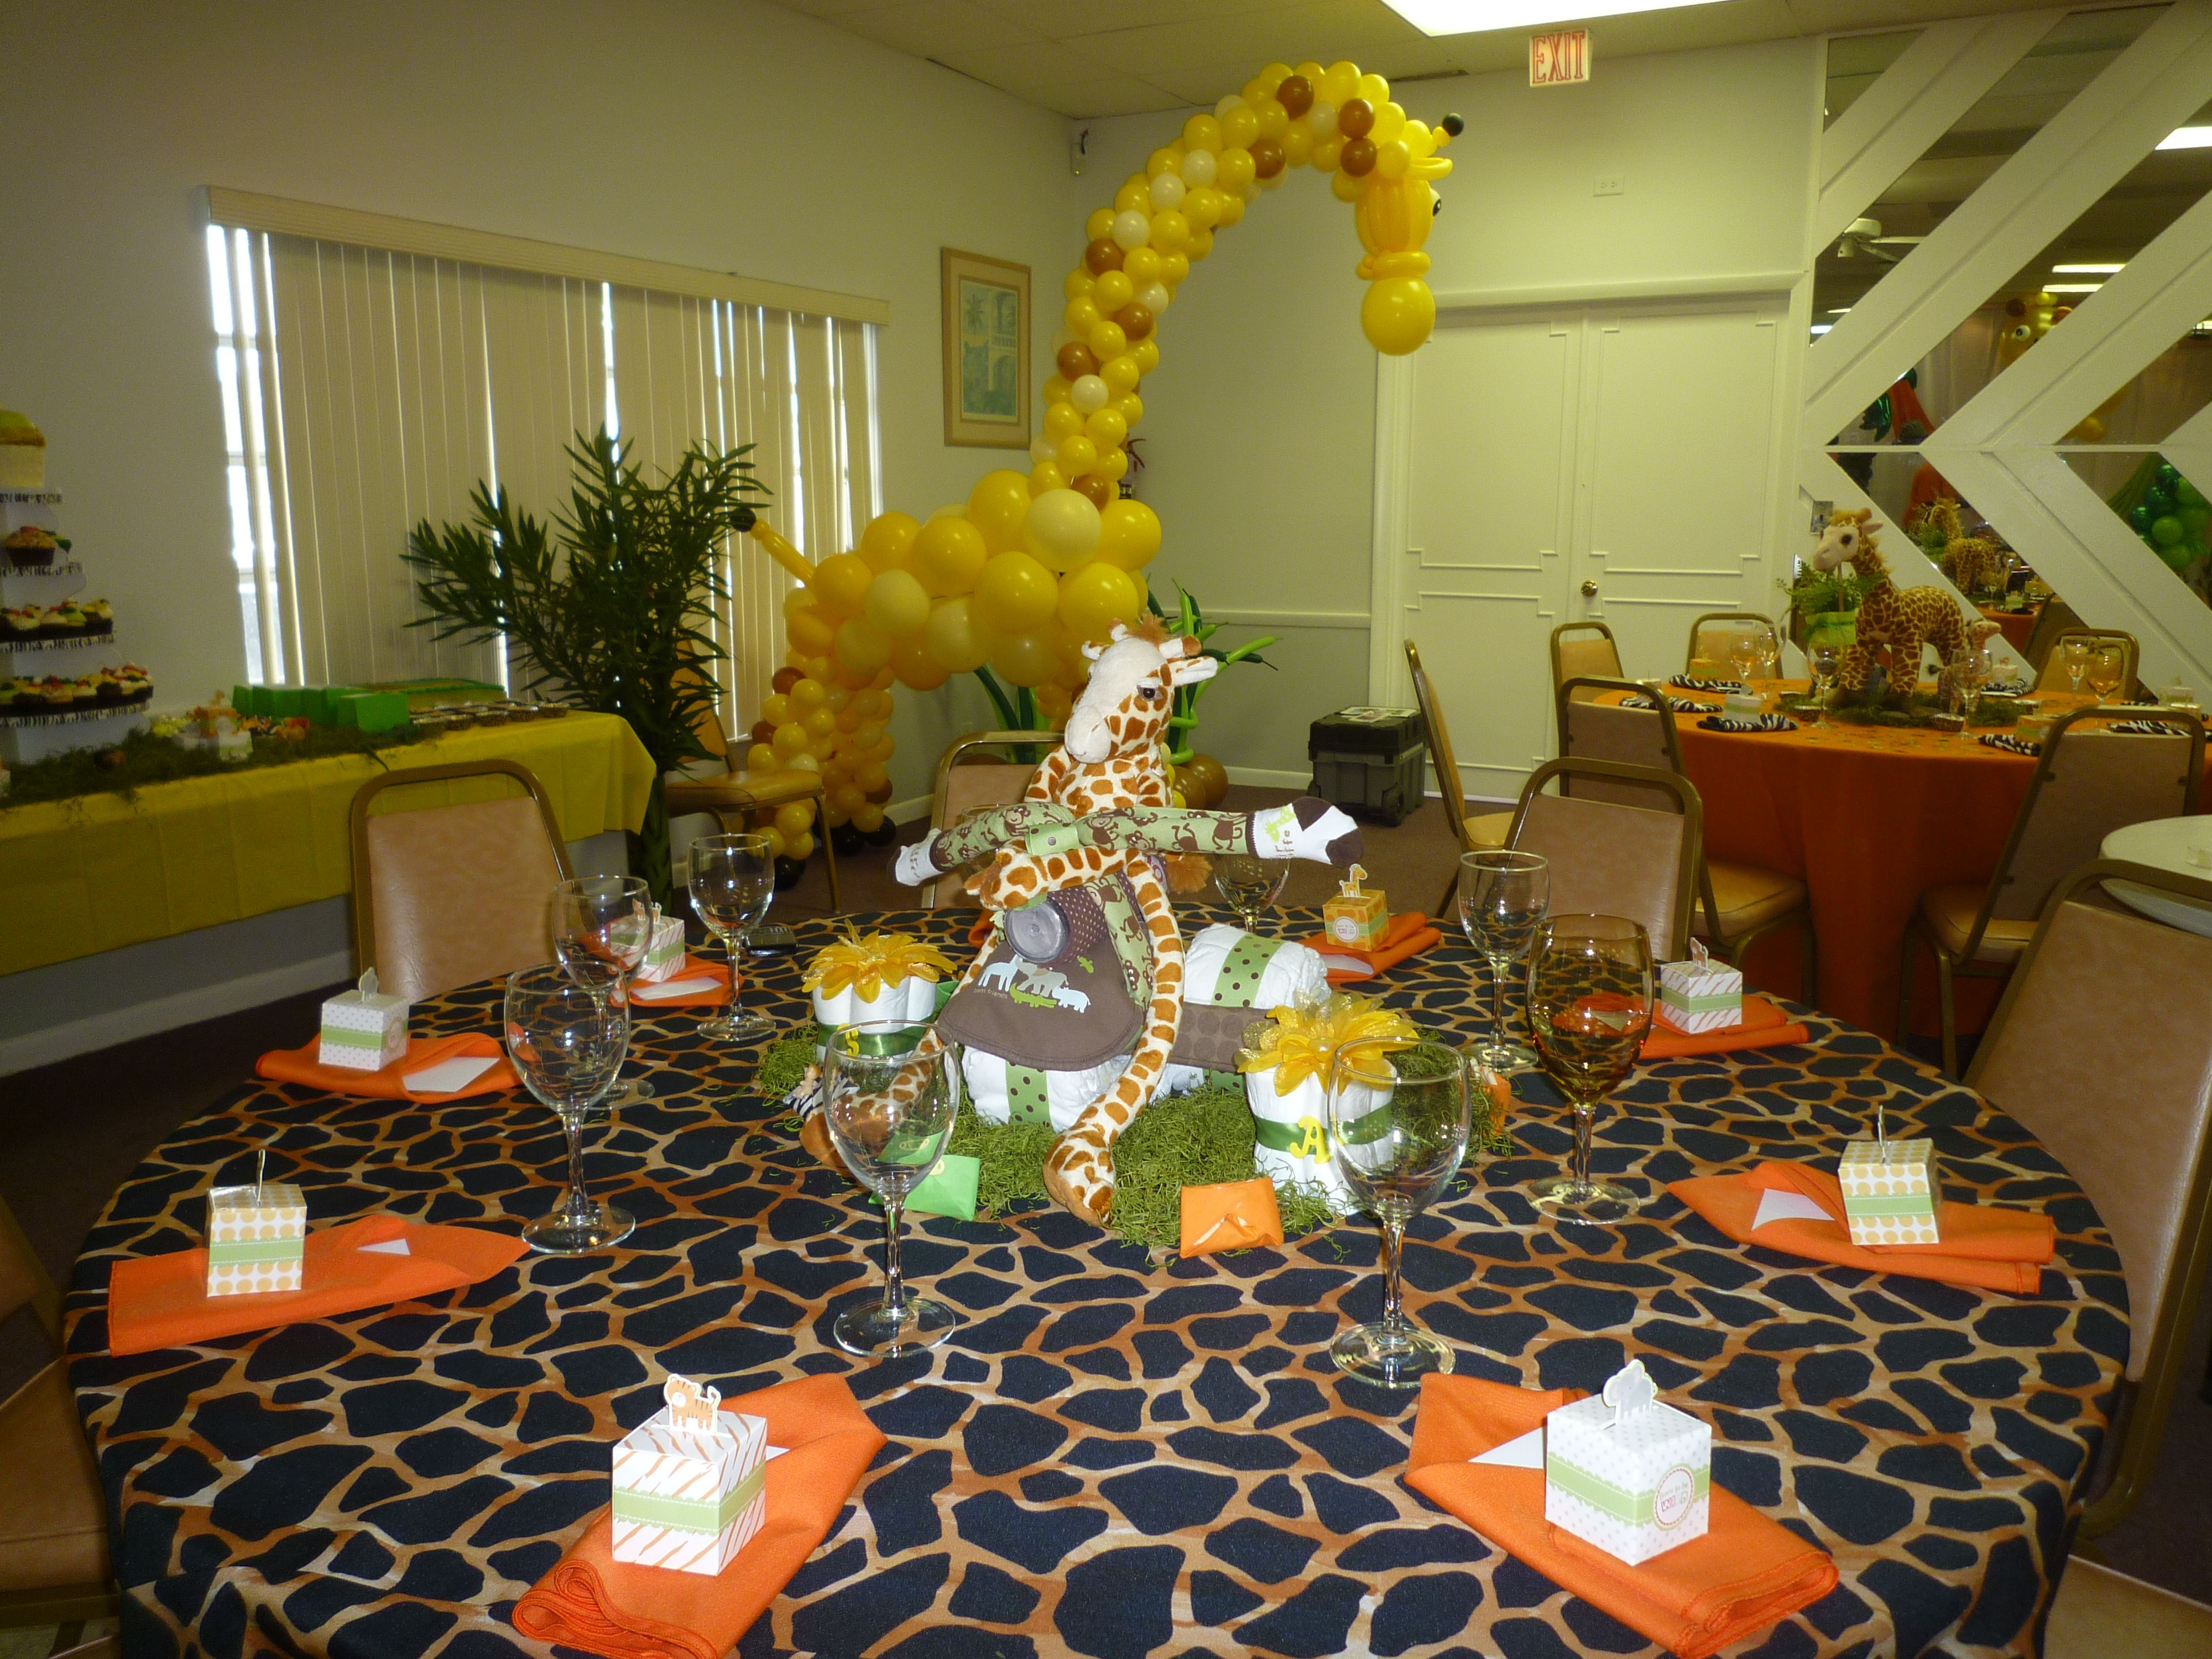 Baby Shower Centerpiece. Giraffe Balloon Sculpture For Baby Shower Party  Entrance Decoration. Http: